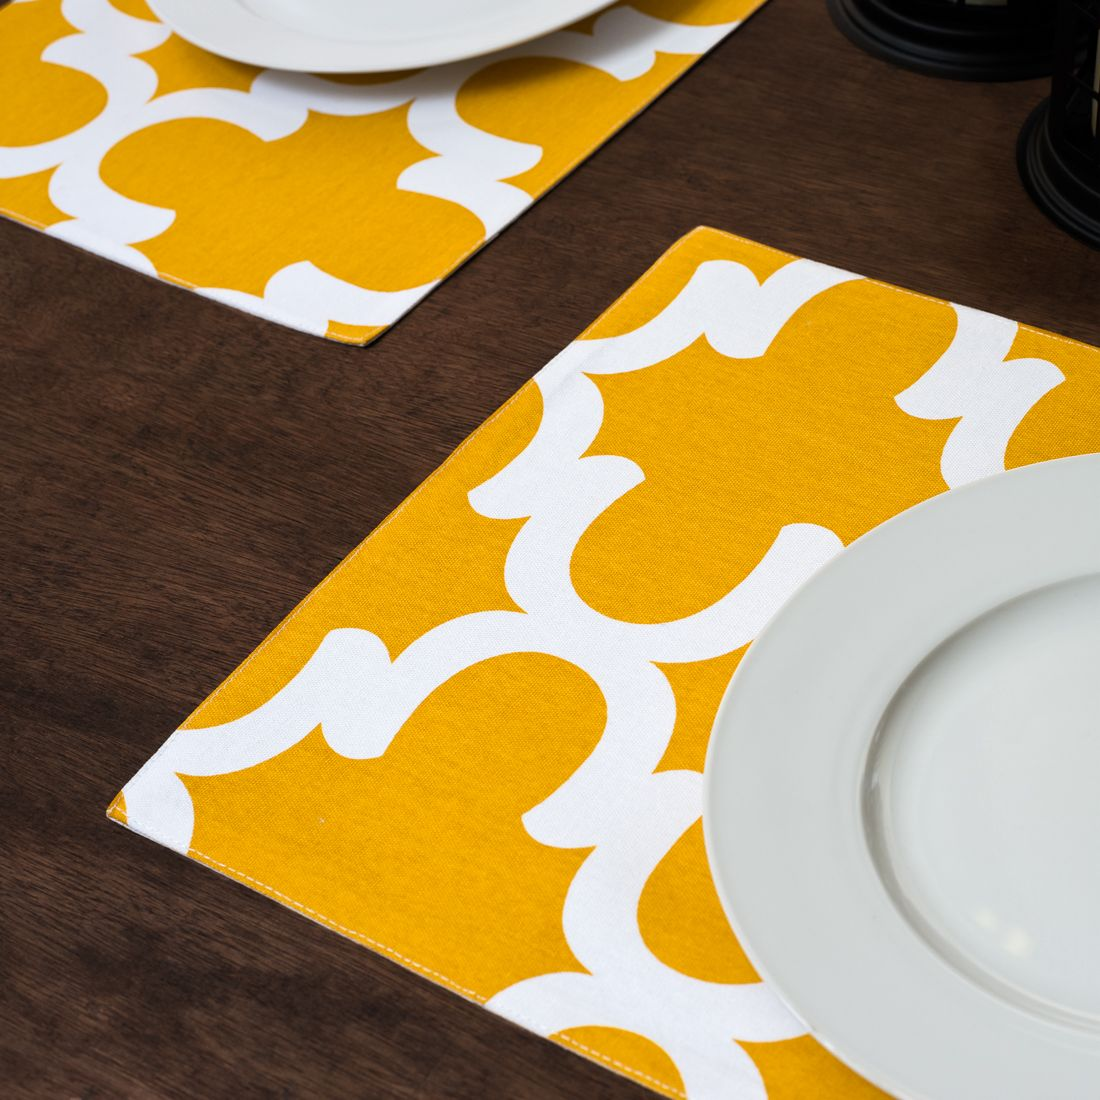 Mustard Yellow & White Trellis Placemats 4/pack | gift ideas ... on kitchen kitchen, kitchen vases, kitchen glassware, kitchen mirrors, kitchen trays, kitchen tablecloths, kitchen silverware, kitchen glasses, kitchen clothing, kitchen stationery, kitchen food, kitchen cushions, kitchen utensils, kitchen crafts, kitchen photography, kitchen napkins, kitchen pitchers, kitchen pillows, kitchen boxes, kitchen cutting boards,